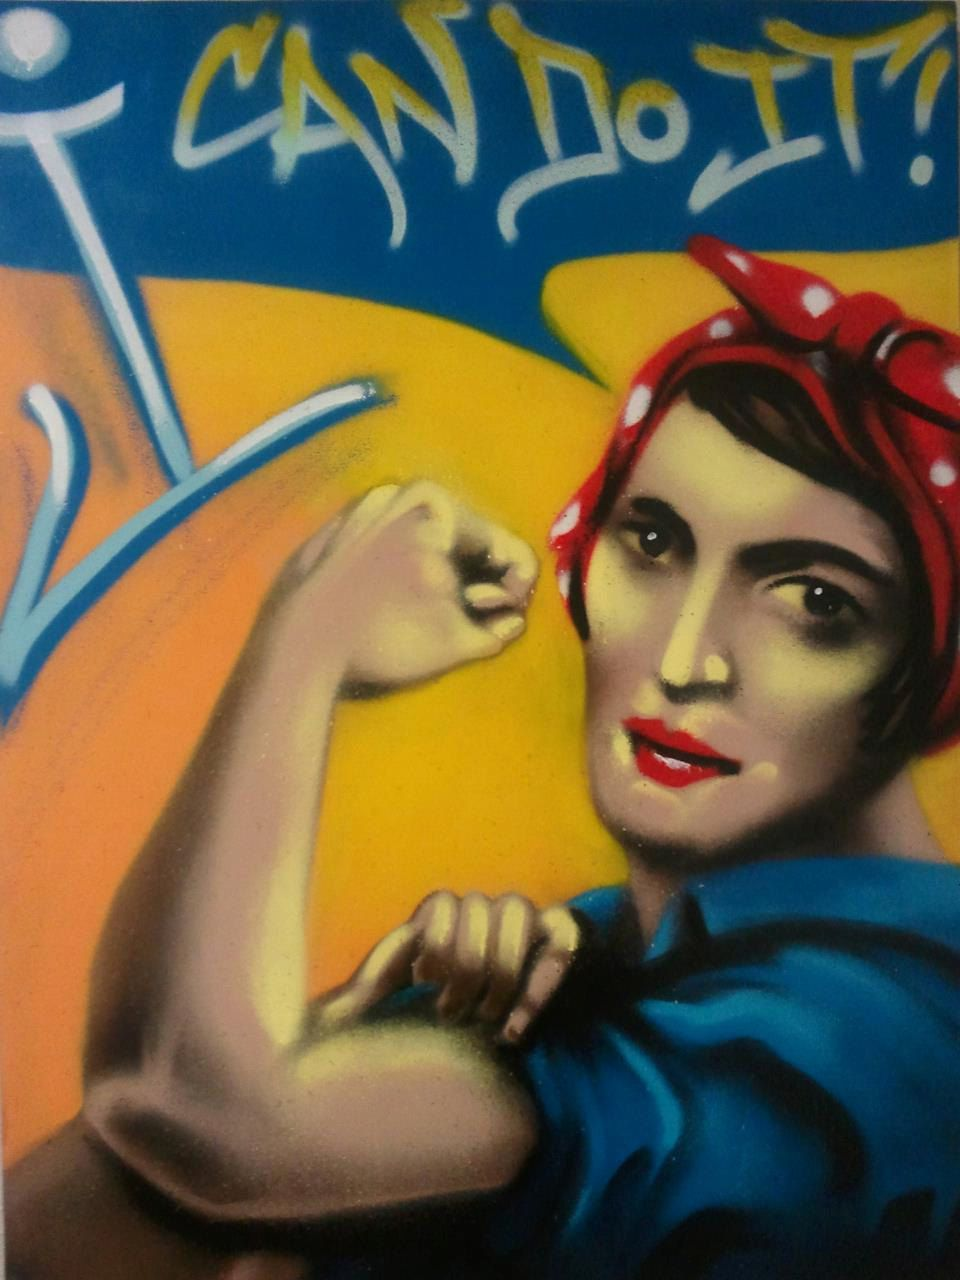 rand the riveter i can do it ayn rand libertarian art rand the riveter i can do it ayn rand libertarian art